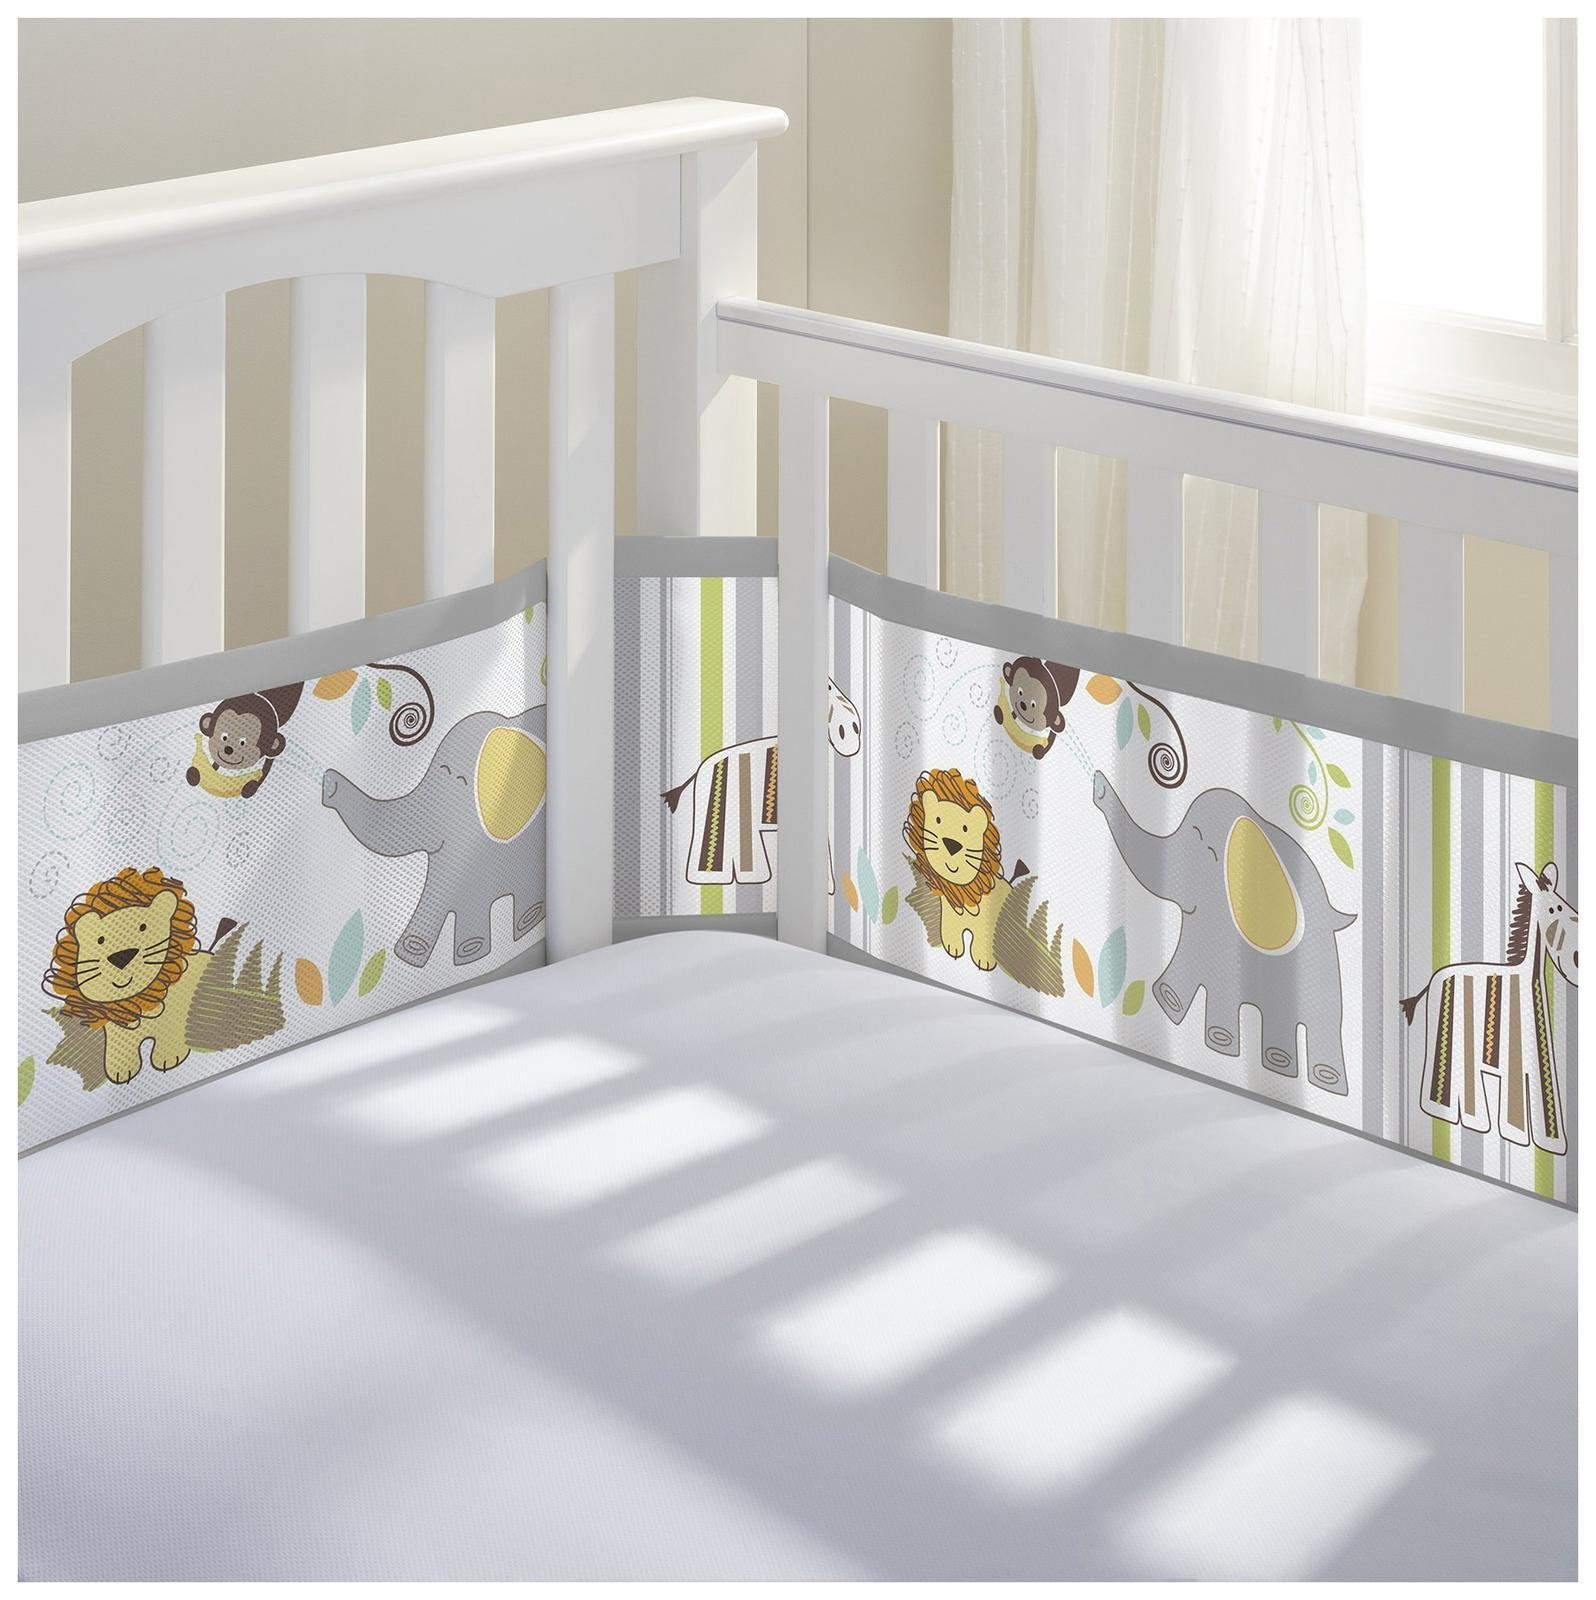 round convertible back panel sets sleek baby ga bedding crib along boy with x cheap cribs favorite l compelling solid target under walmart